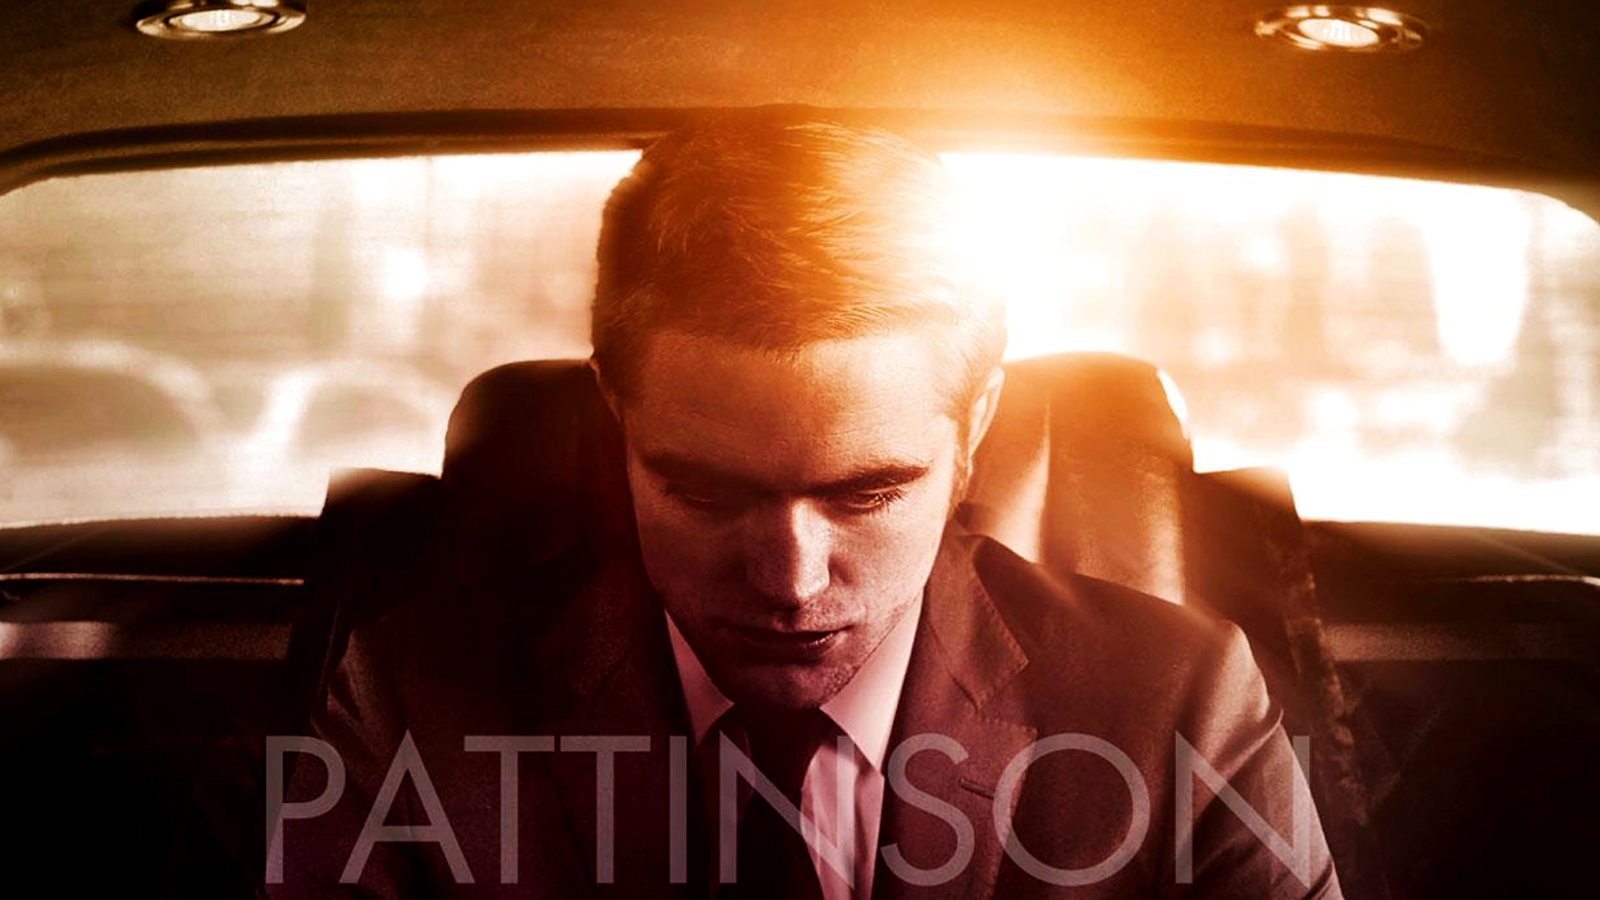 http://4.bp.blogspot.com/-TBAmq0CQMvE/UCURnEIGcOI/AAAAAAAADpw/isxgNmkFLis/s1600/Robert_Pattinson_Cosmopolis_Movie_HD_Wallpaper-Vvallpaper.Net.jpg